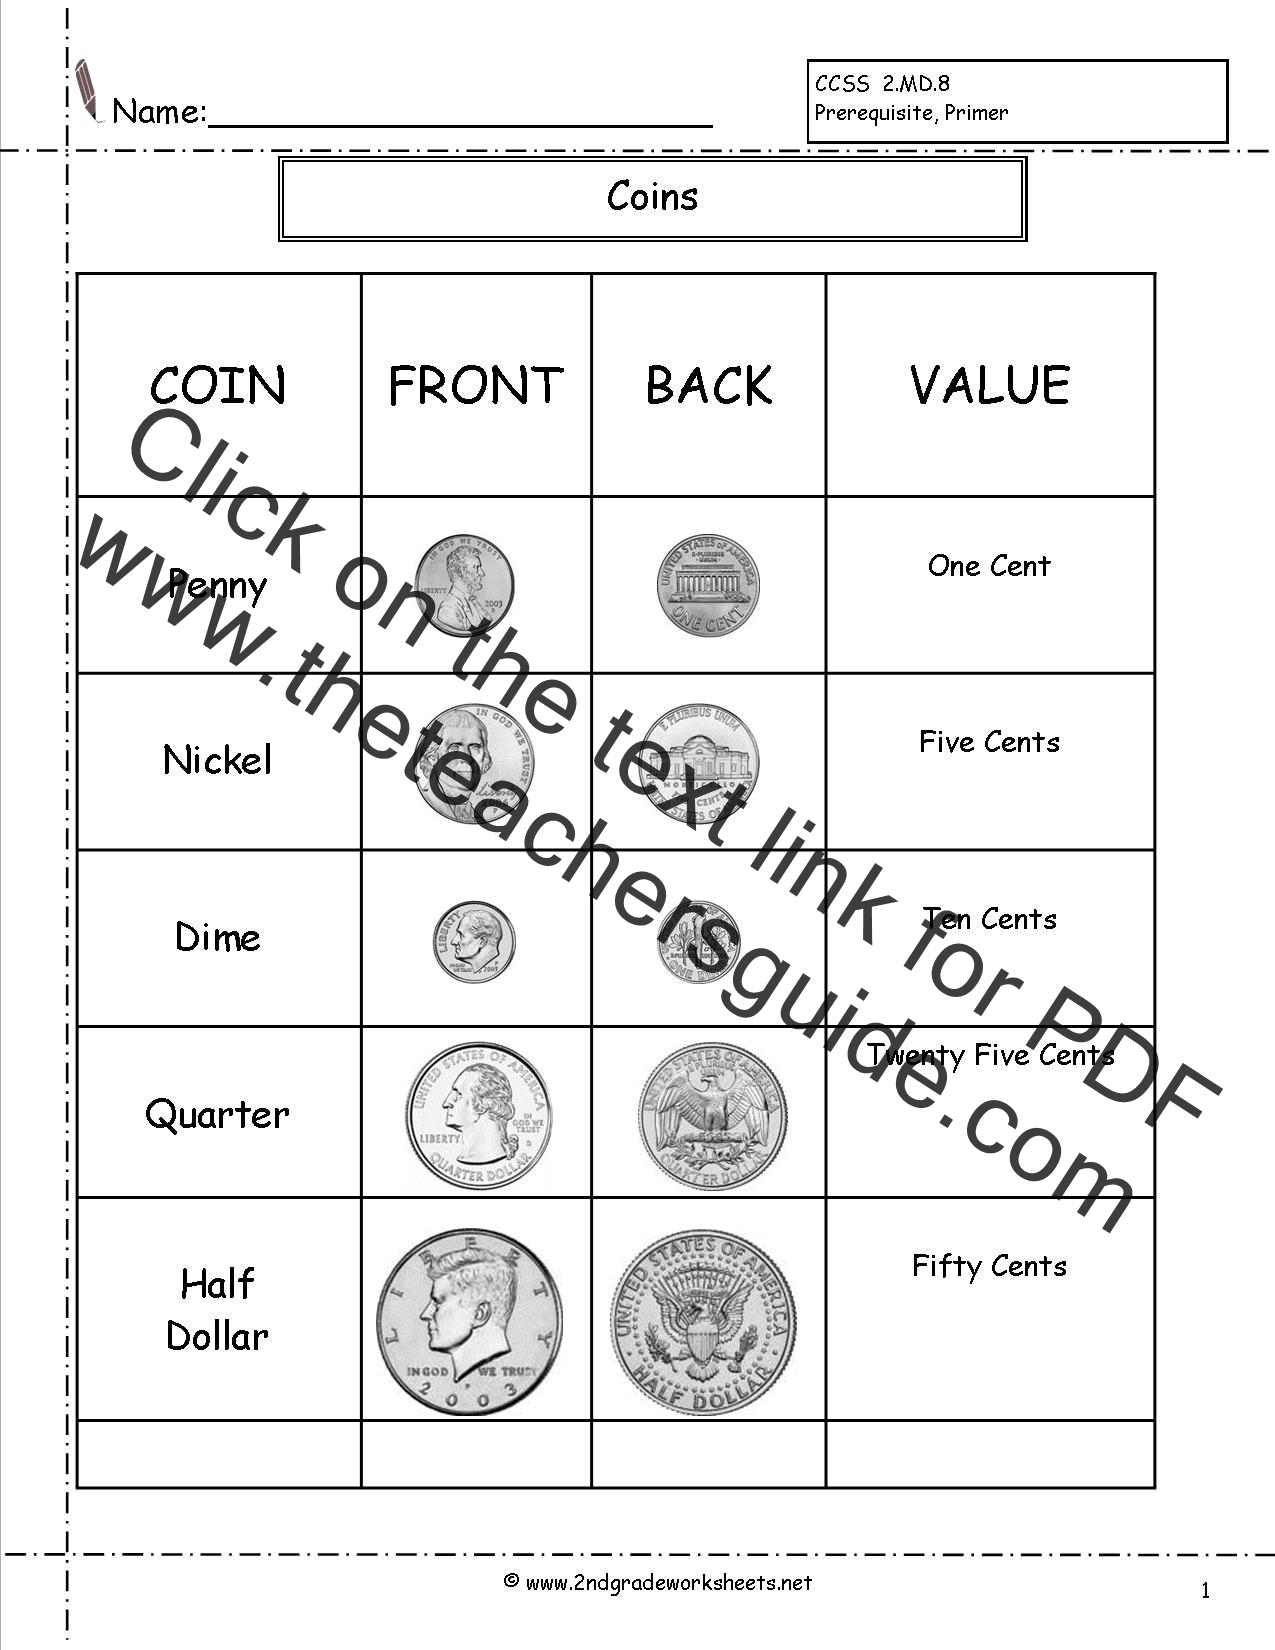 ccss 2 md 8 worksheets counting coins worksheets money wordproblems worksheets. Black Bedroom Furniture Sets. Home Design Ideas